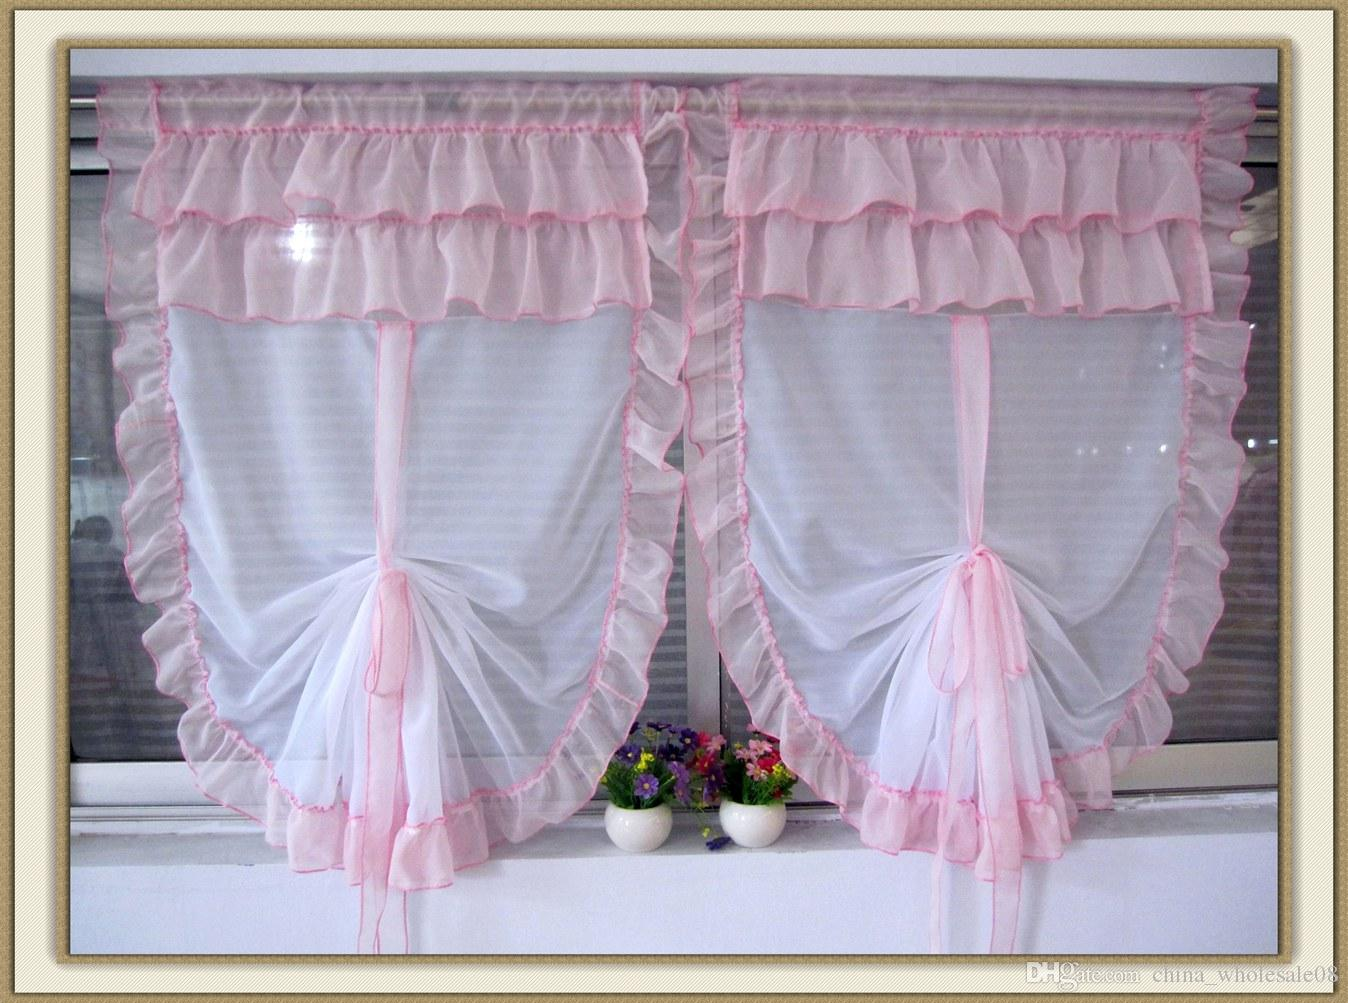 Balloon Curtains Wiring Library 95 Yfm350er Moto 4 Diagram Hot Tulle For Bay Window Roman Curtain Blinds Embroidered Voile Sheer Flounced Kitchen